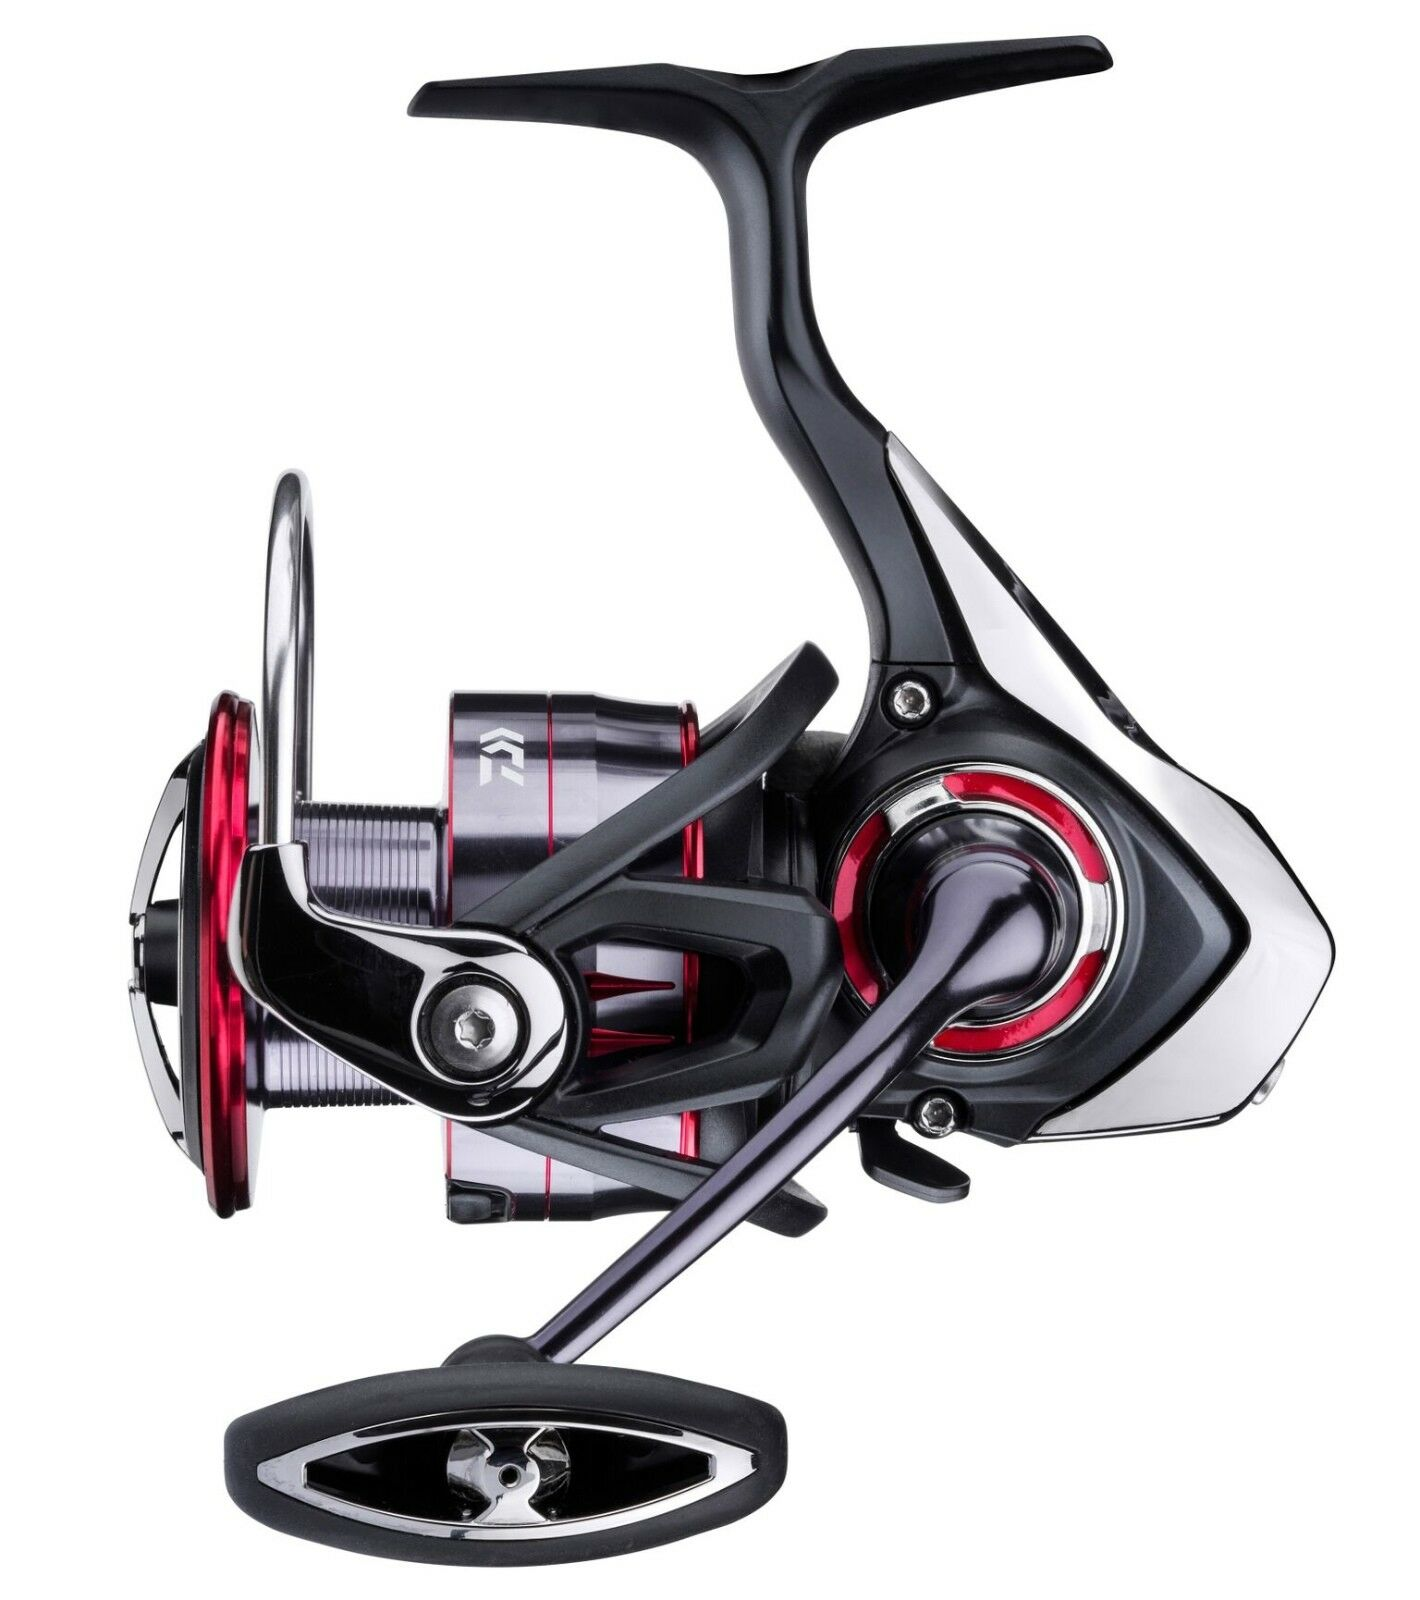 2018 DAIWA FUEGO LT Spinning Reel / All Größes : 1000 - 6000 / LIGHT & TOUGH